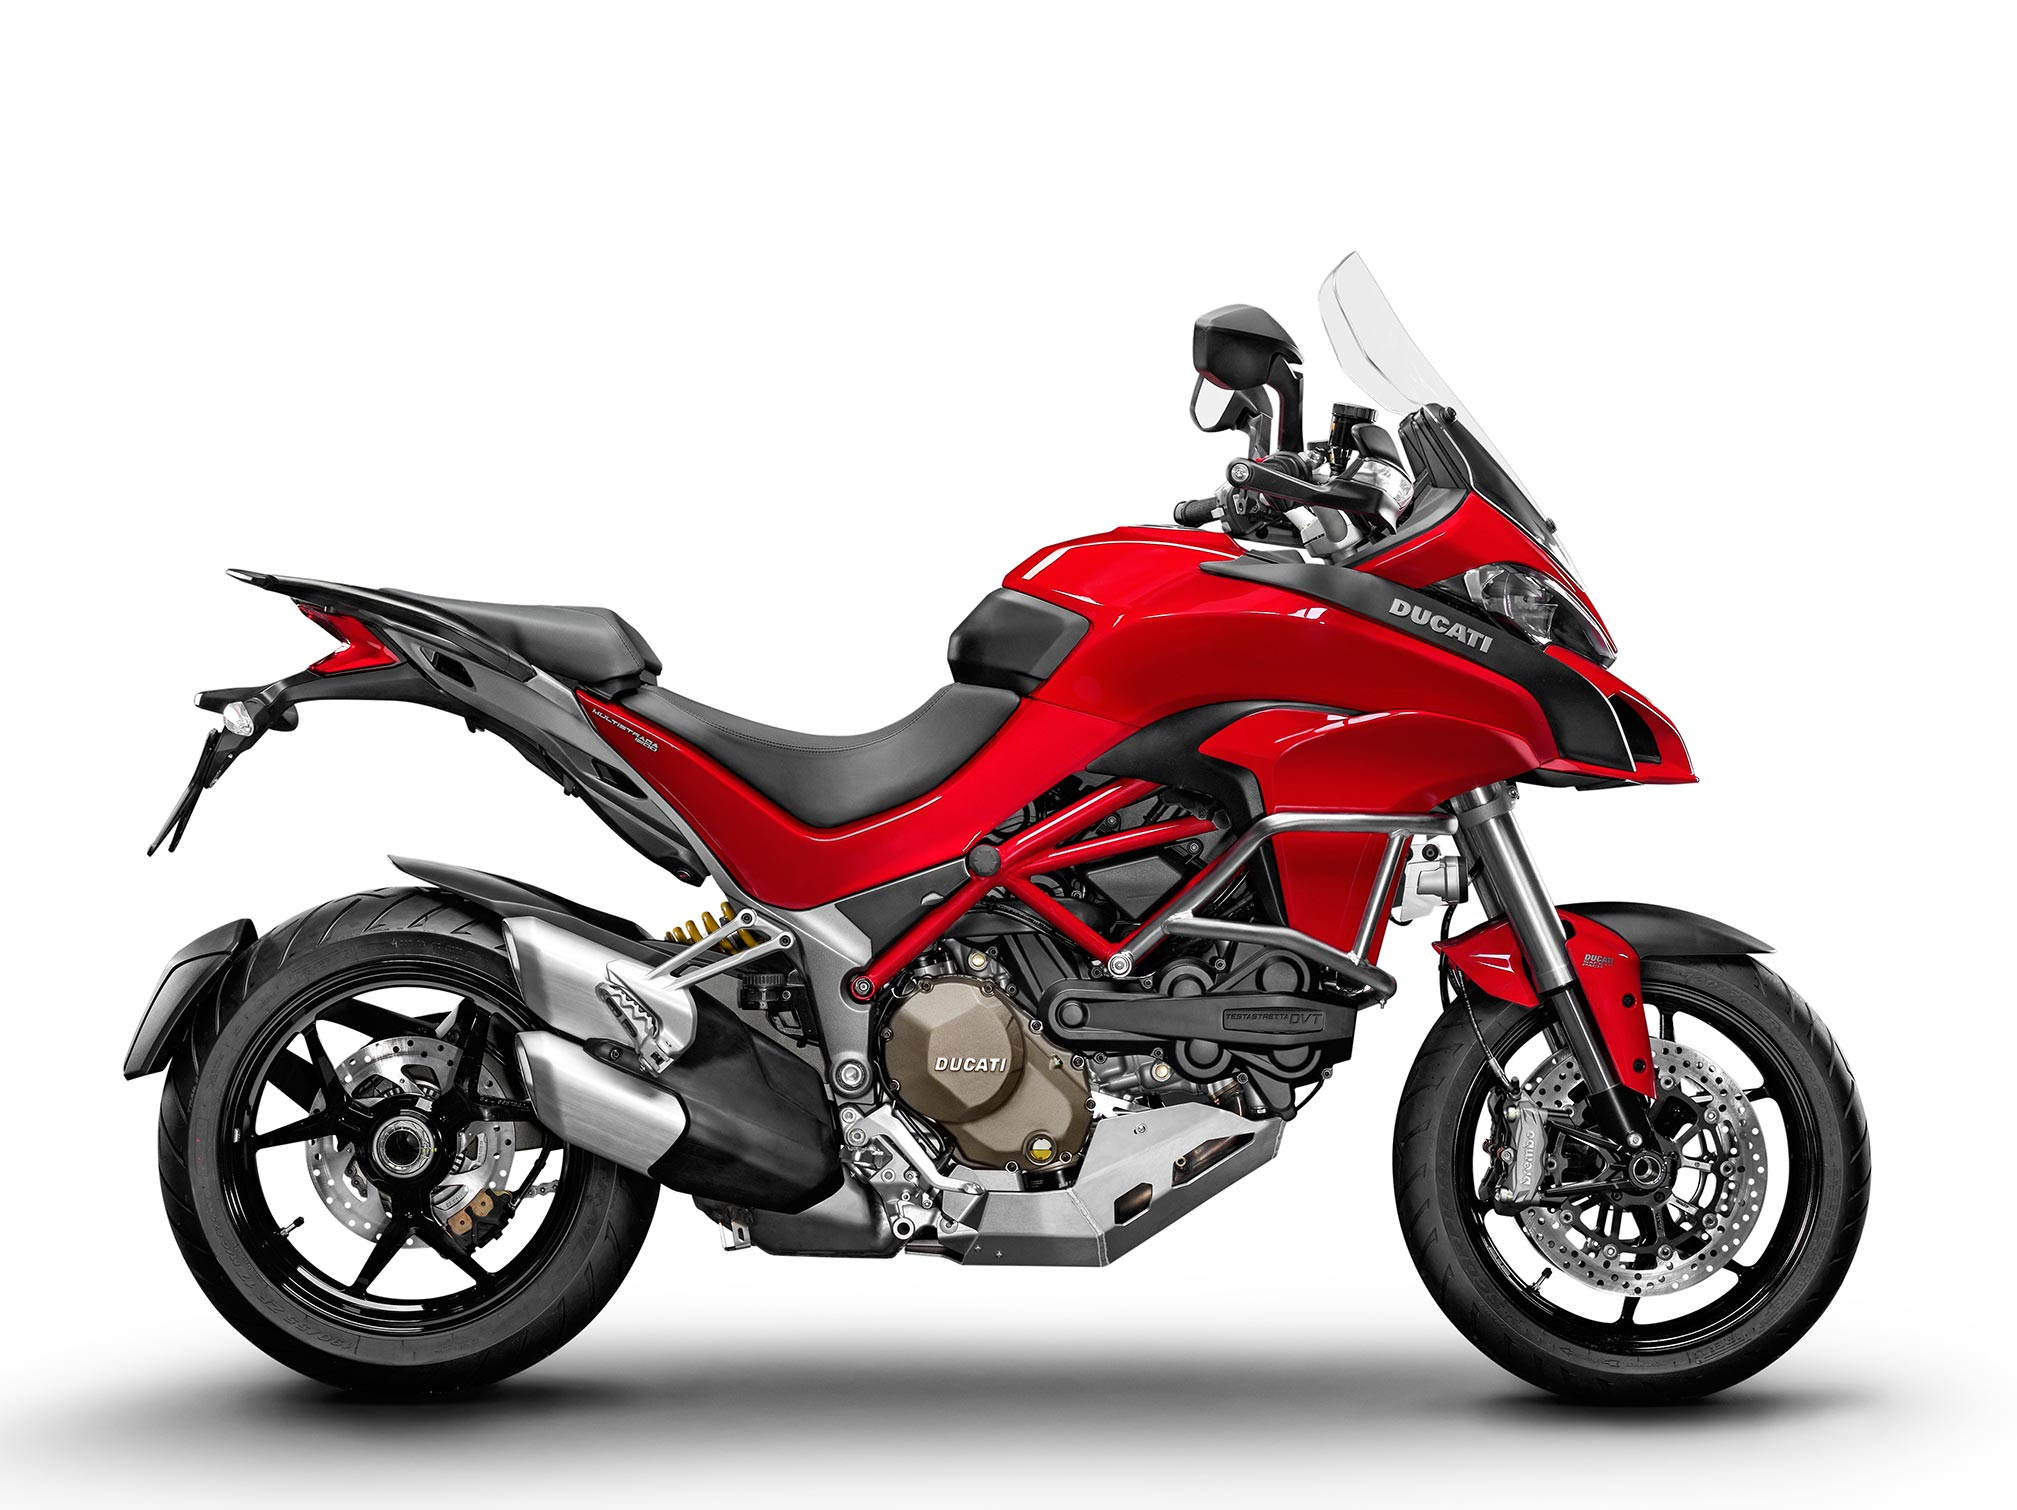 2017 Ducati Multistrada 1200 (Enduro Pack)